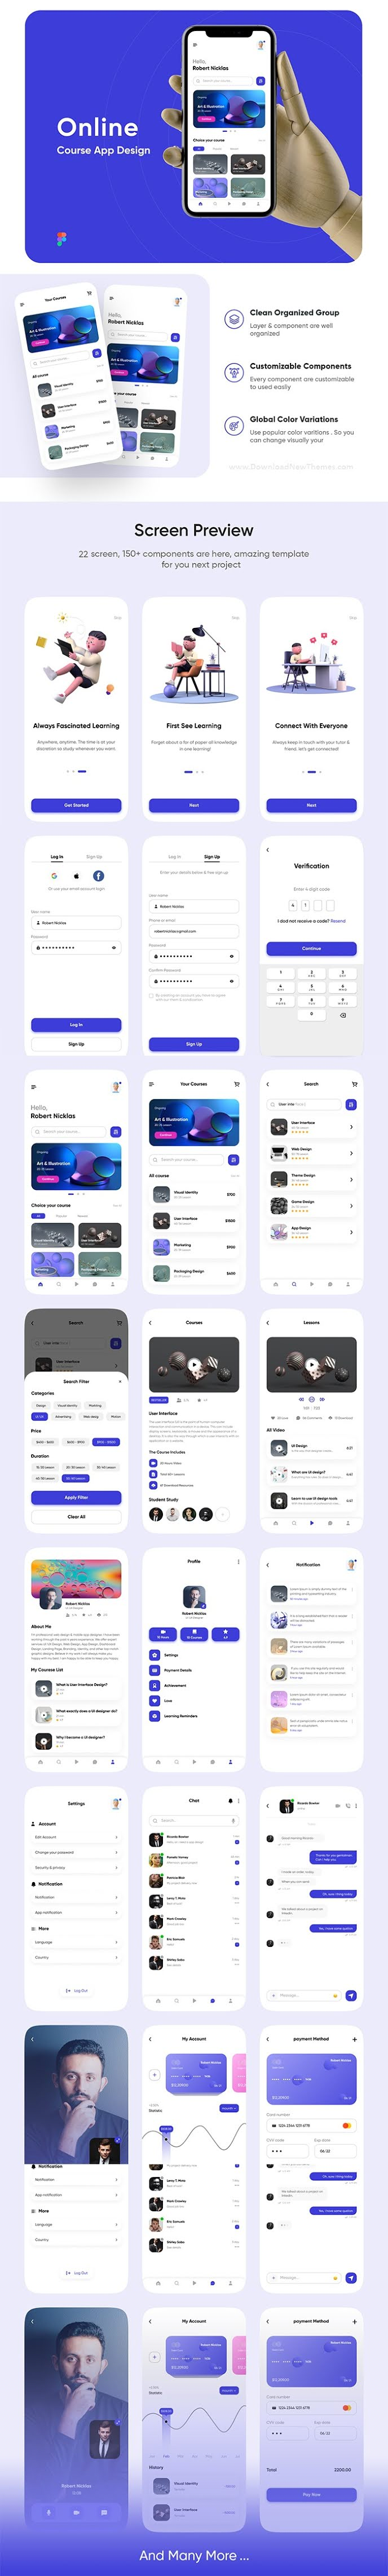 Online learning course app UI kit